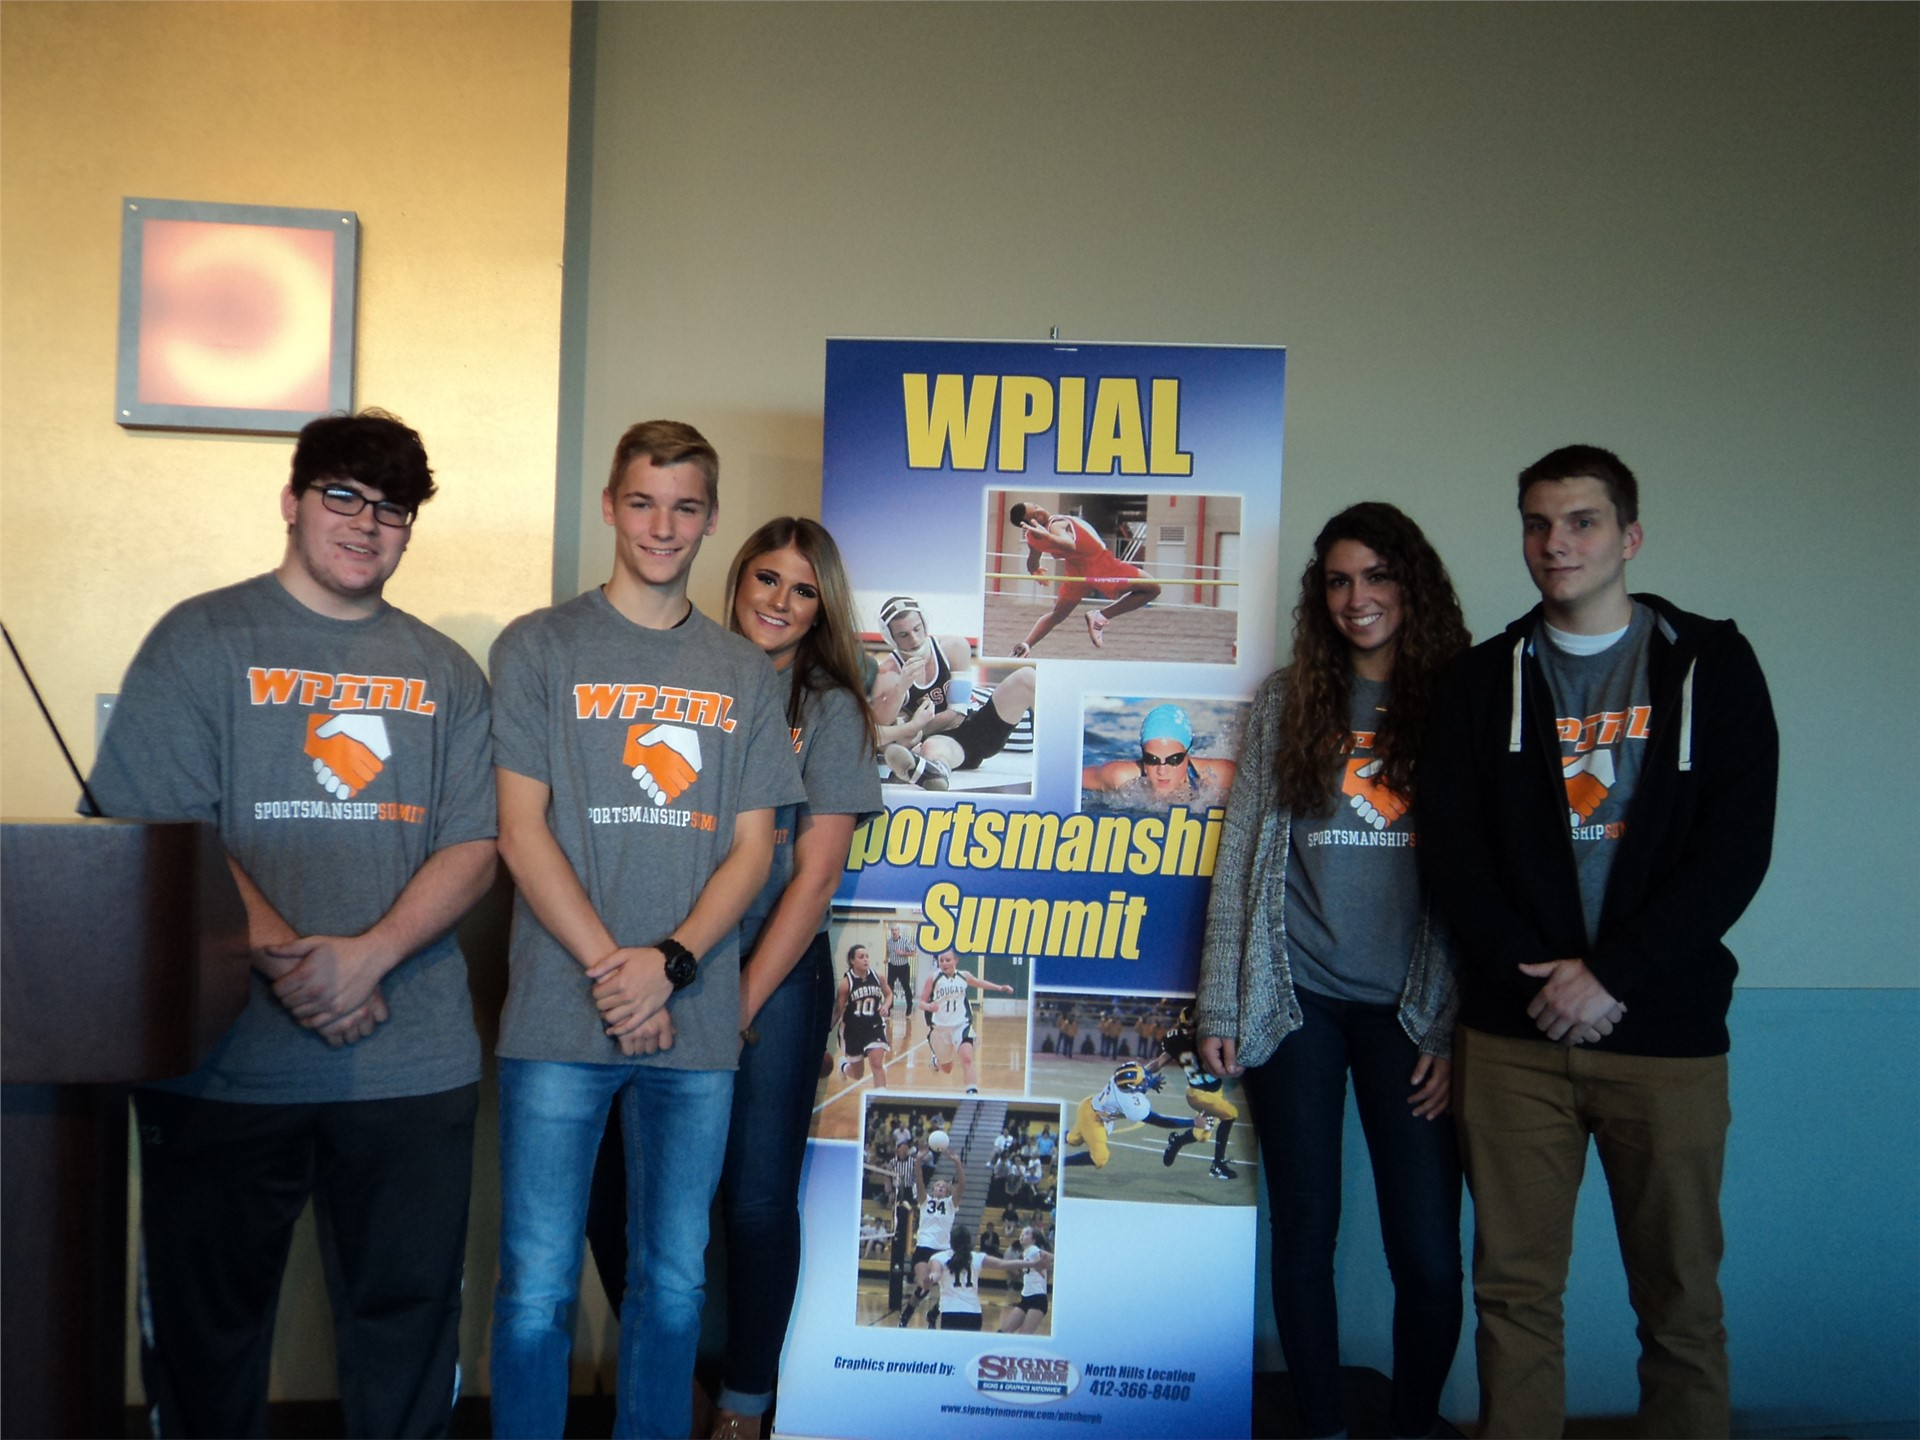 Plum H S student-athletes attended the WPIAL Sportsmanship Summit at the Heinz History Center